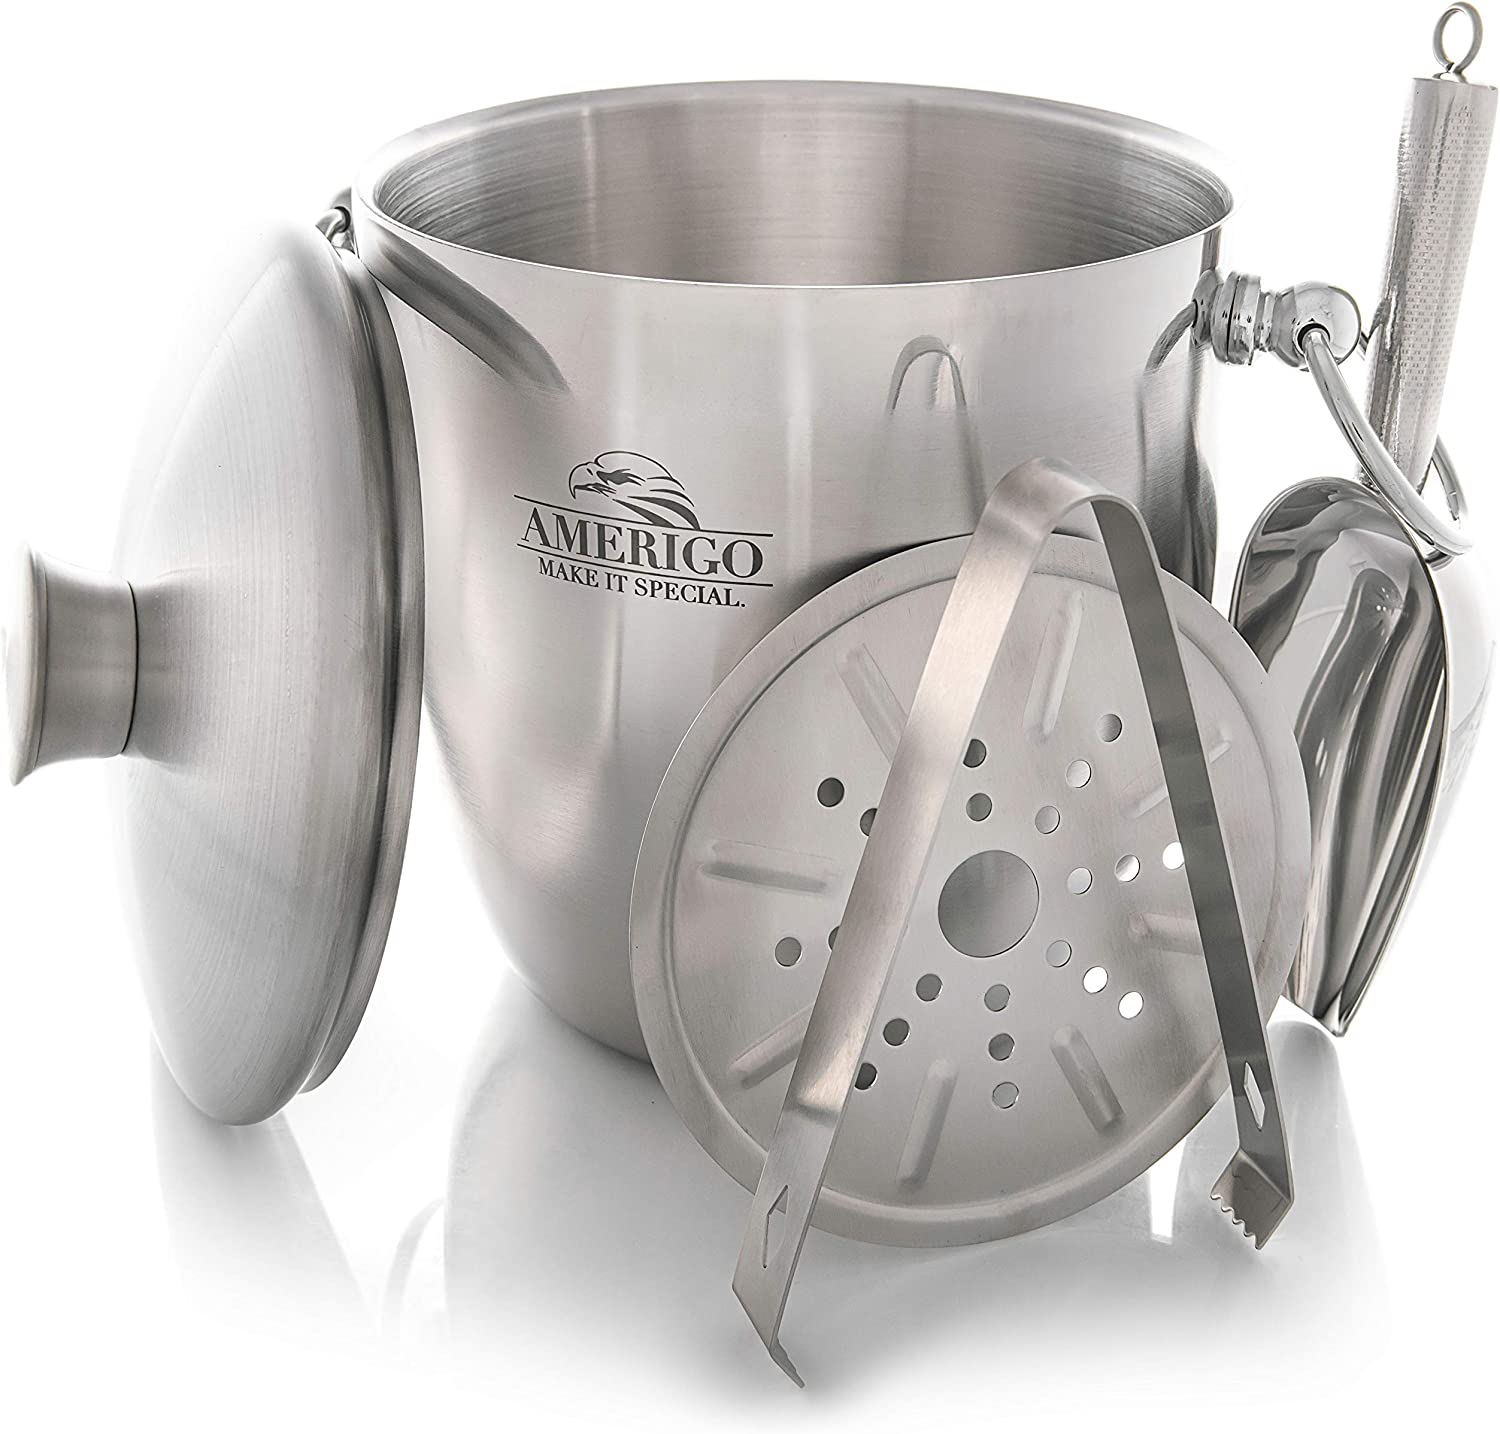 Amerigo Exclusive Insulated Ice Bucket - Well Made Double-Wall Champagne Bucket Keeps Ice Frozen Longer - 3 Liter Stainless Steel Ice Bucket for Parties with Lid, Strainer, Ice Tongs + Free Ice Scoop